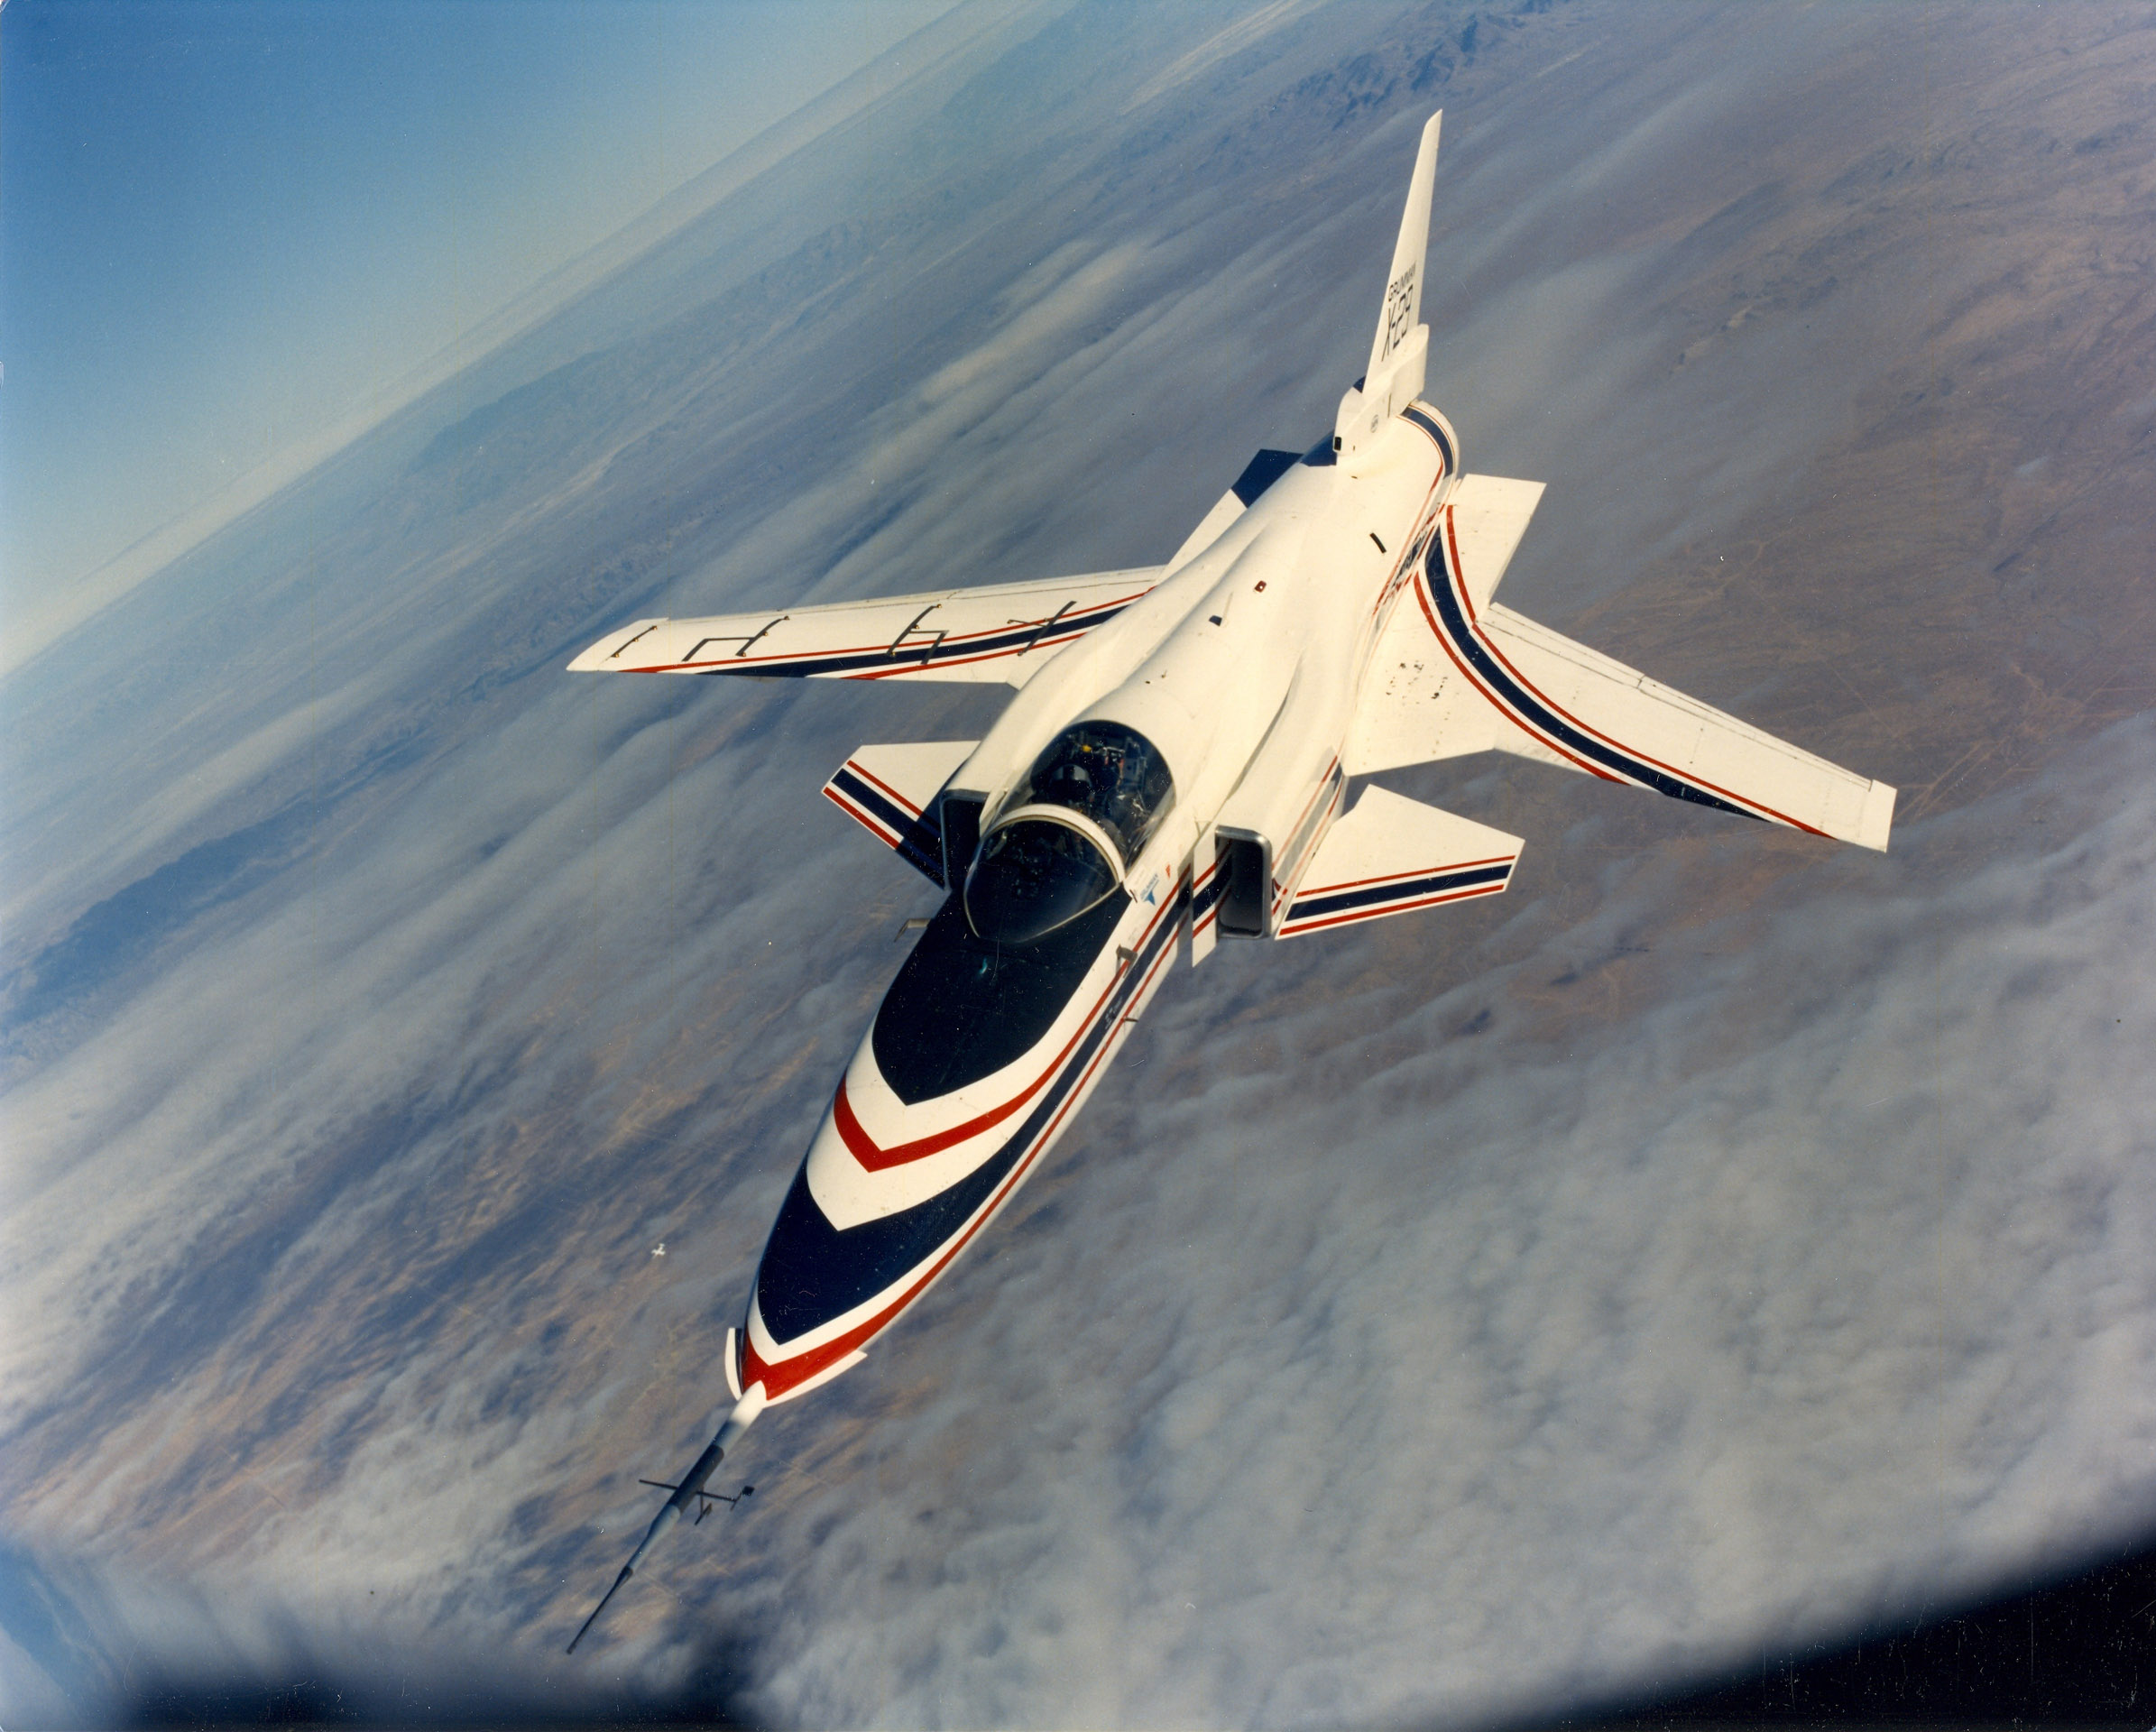 X-29_from_front_perspective.jpg